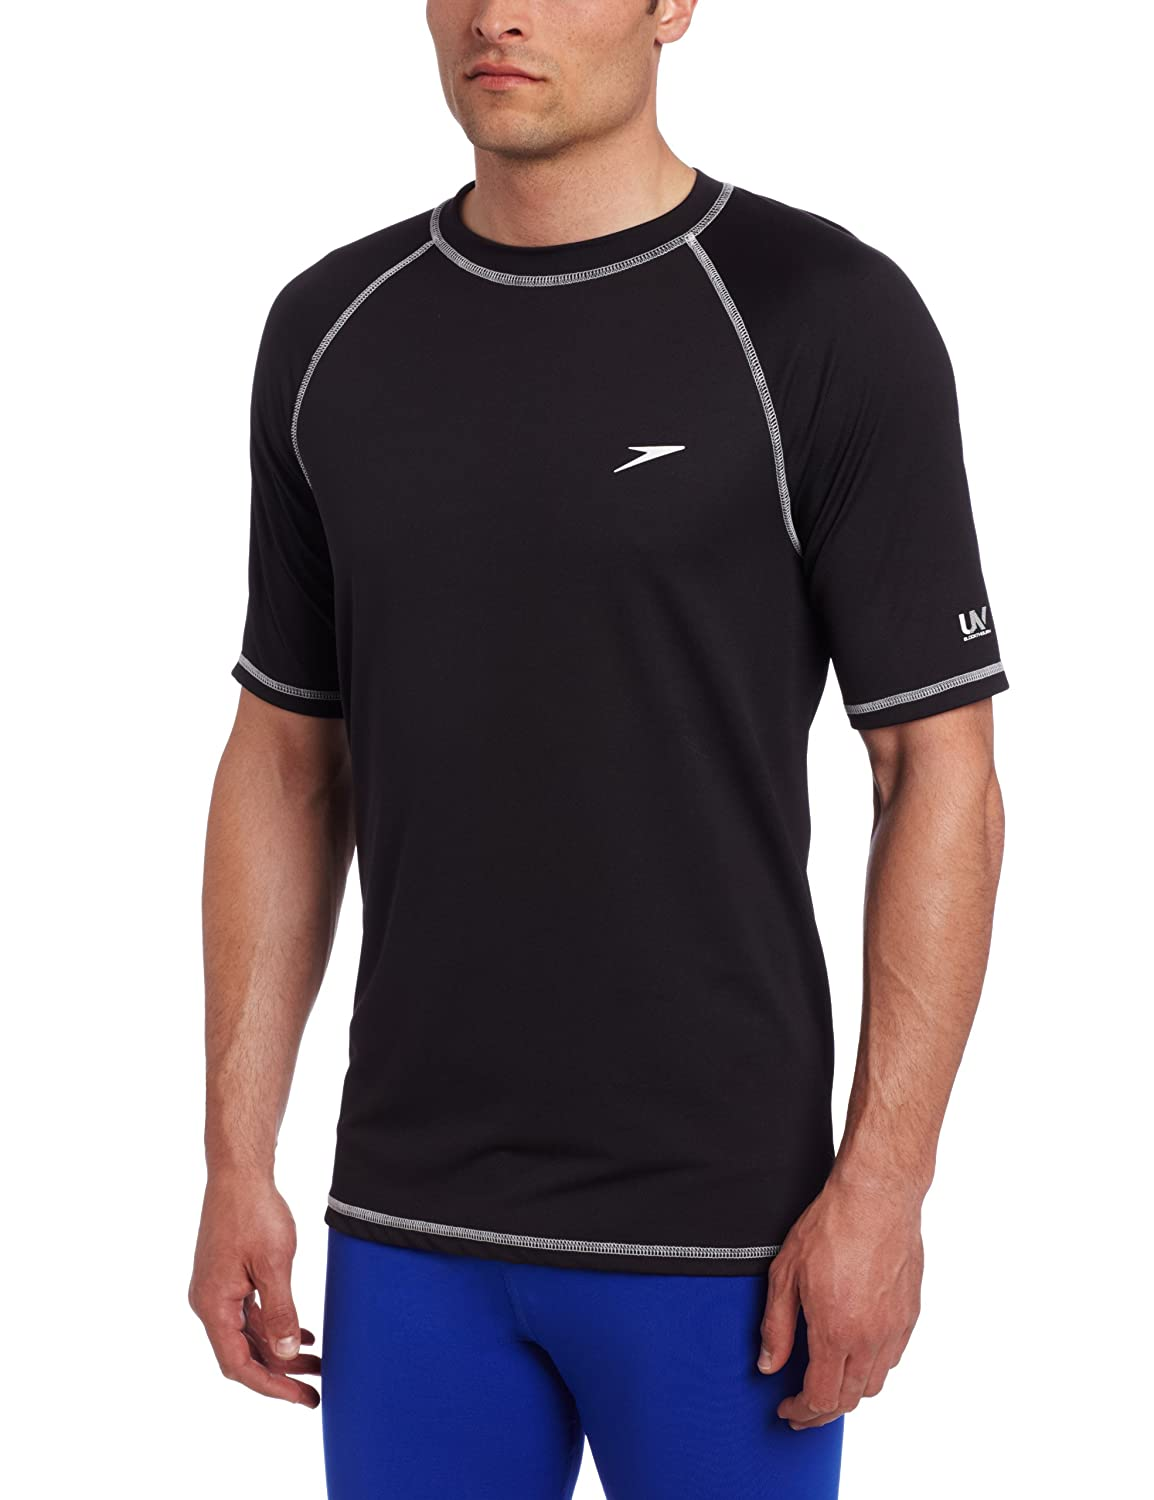 Speedo Men's UPF 50+ Short-Sleeve Rashguard